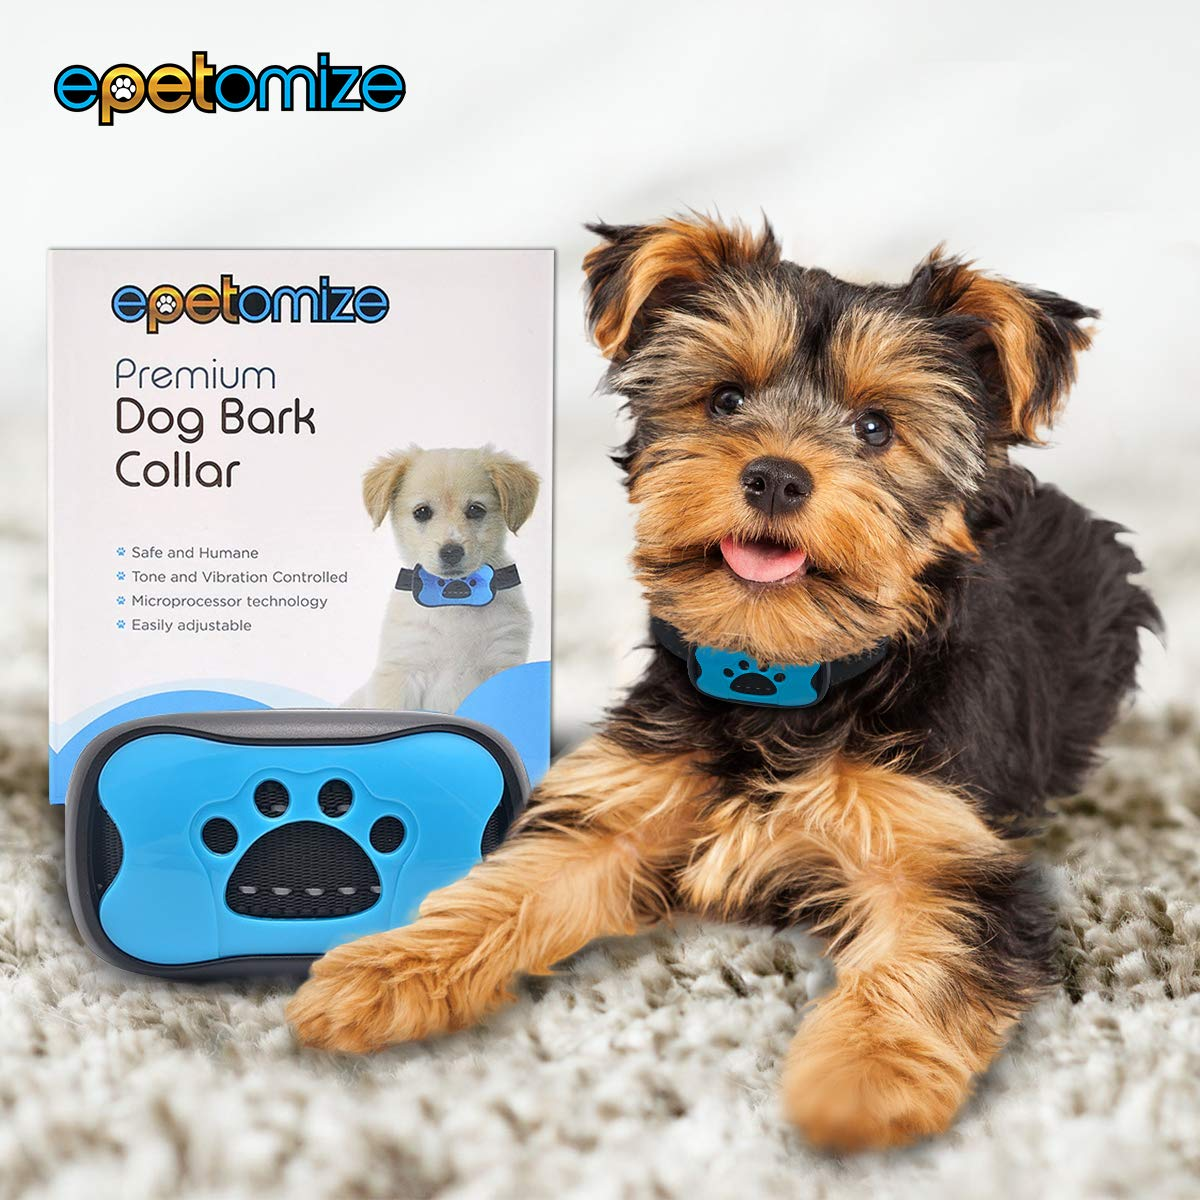 epetomize Dog Bark Collar NO SHOCK – Safe harmless Anti Bark Collar with HUMANE VIBRATION – Small medium and Large size Breeds – Automatic Activation Barking Collar – Easily Adjustable with No Remote